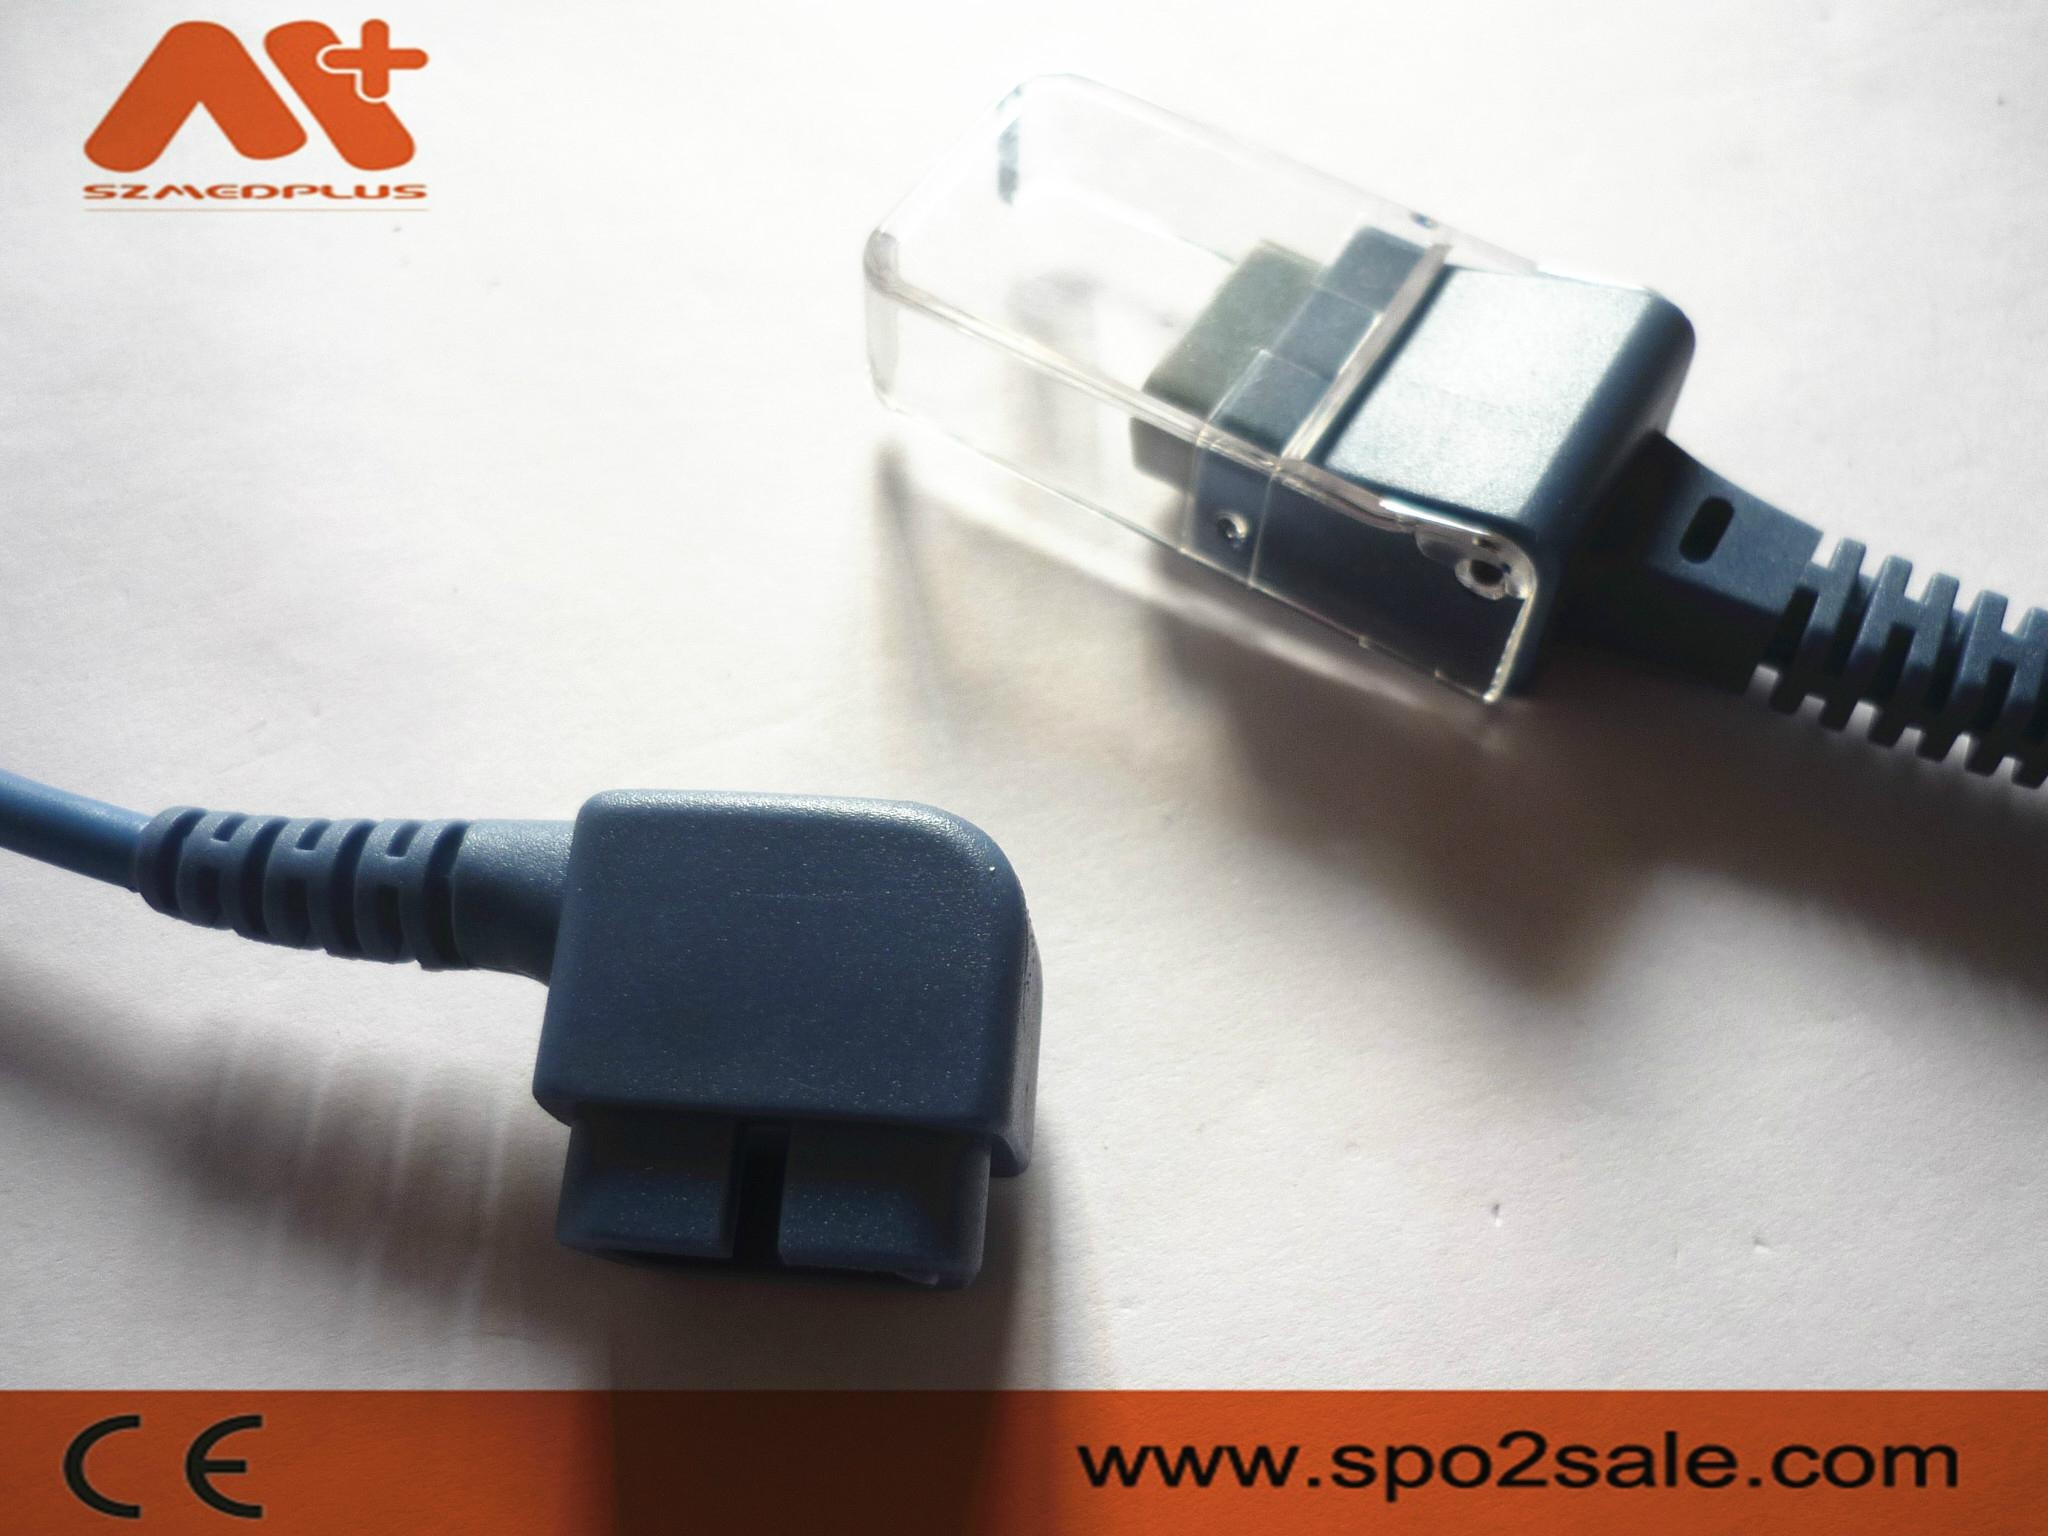 CSI 518DD Spo2 extension cable